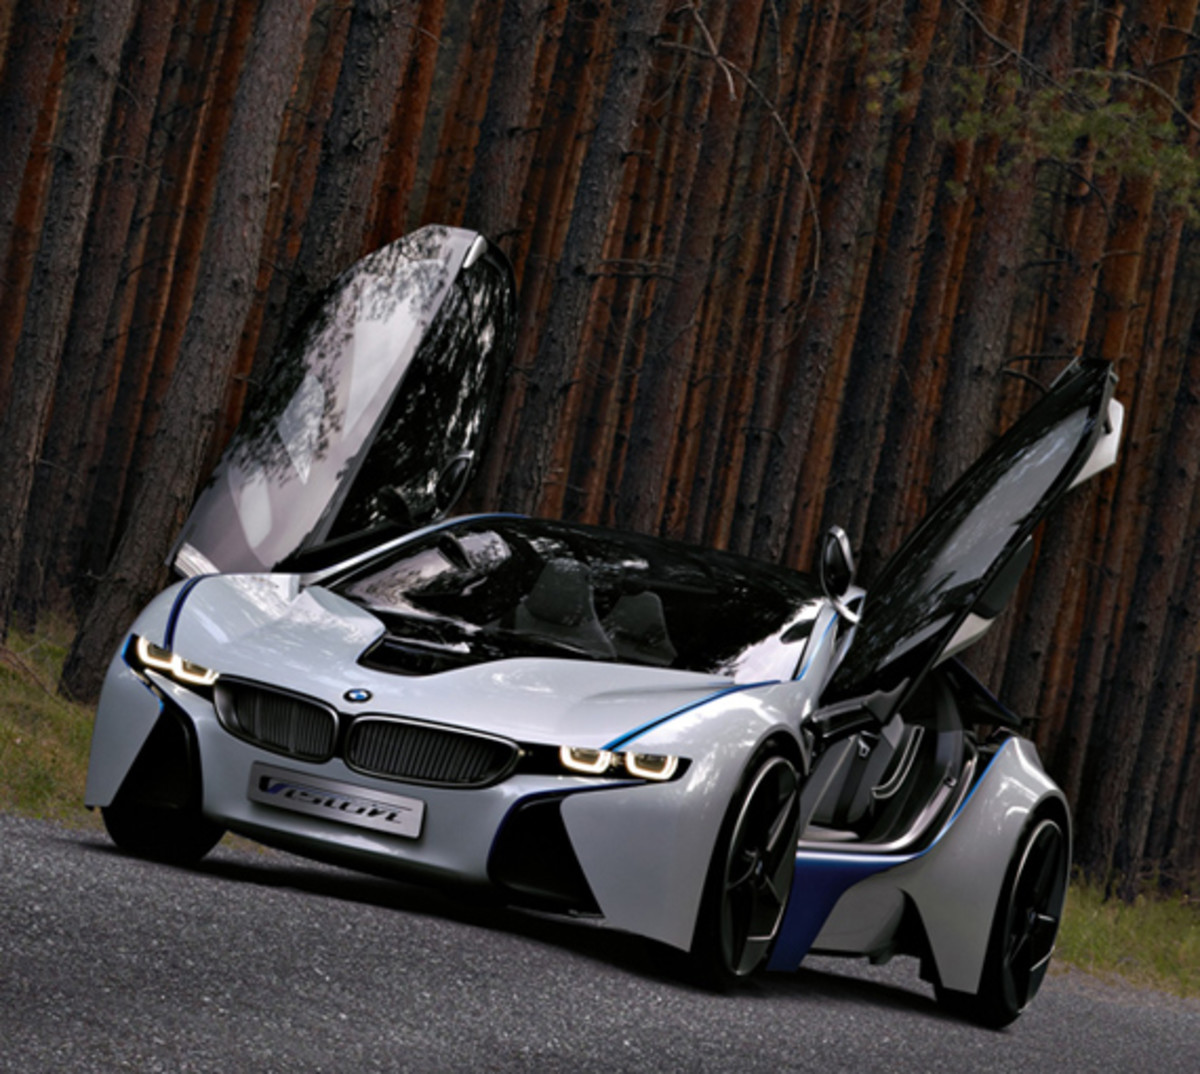 BMW-Vision-EfficientDynamics-woods-04